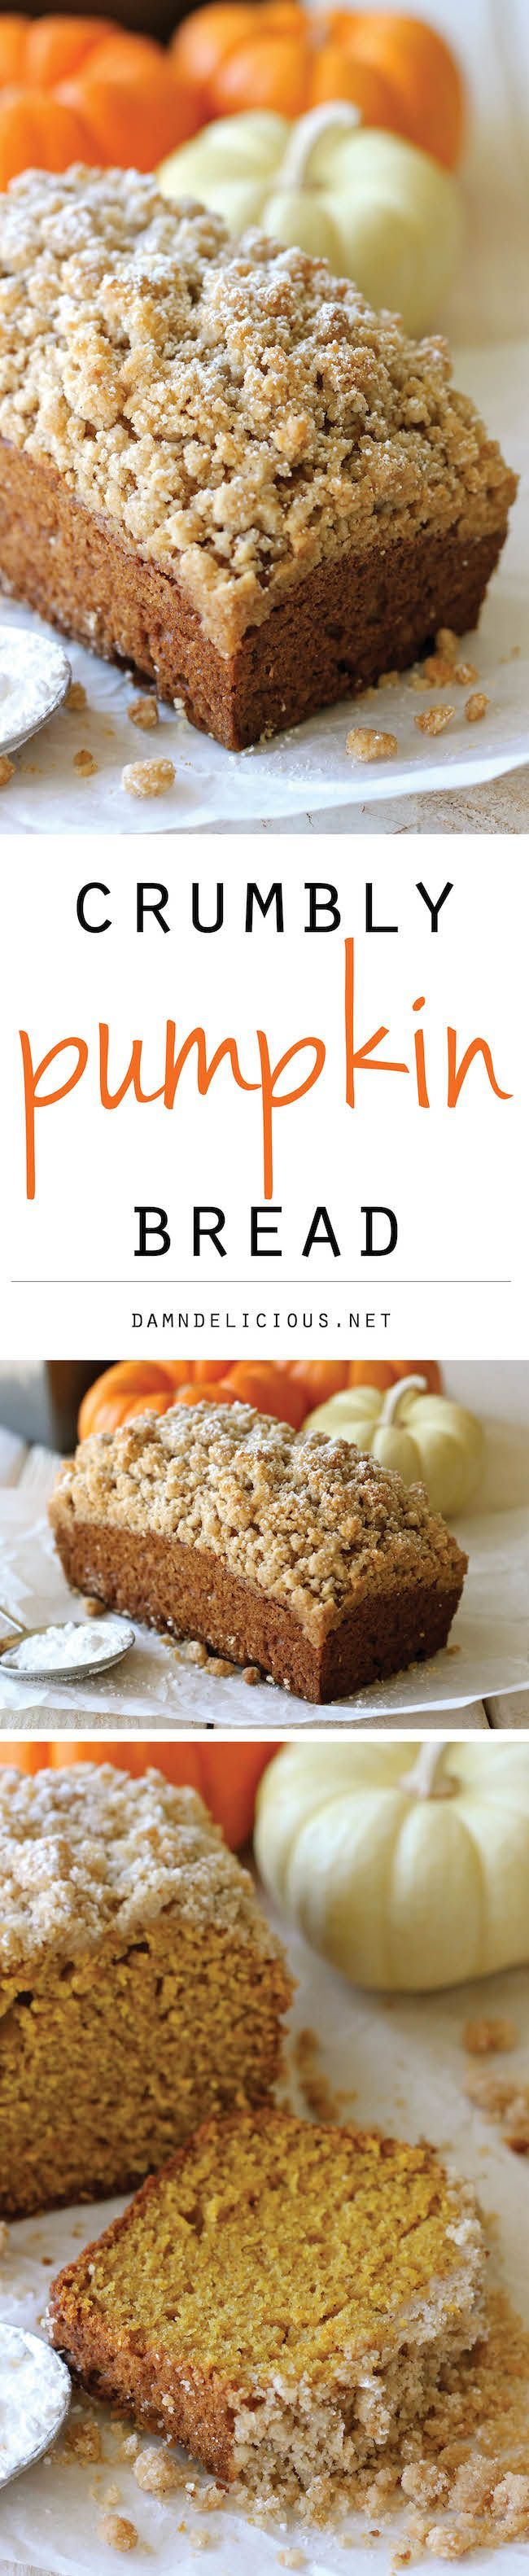 Crumbly Pumpkin Bread - With lightened-up options, this can be eaten guilt-free! The crumb topping is absolutely amazing!